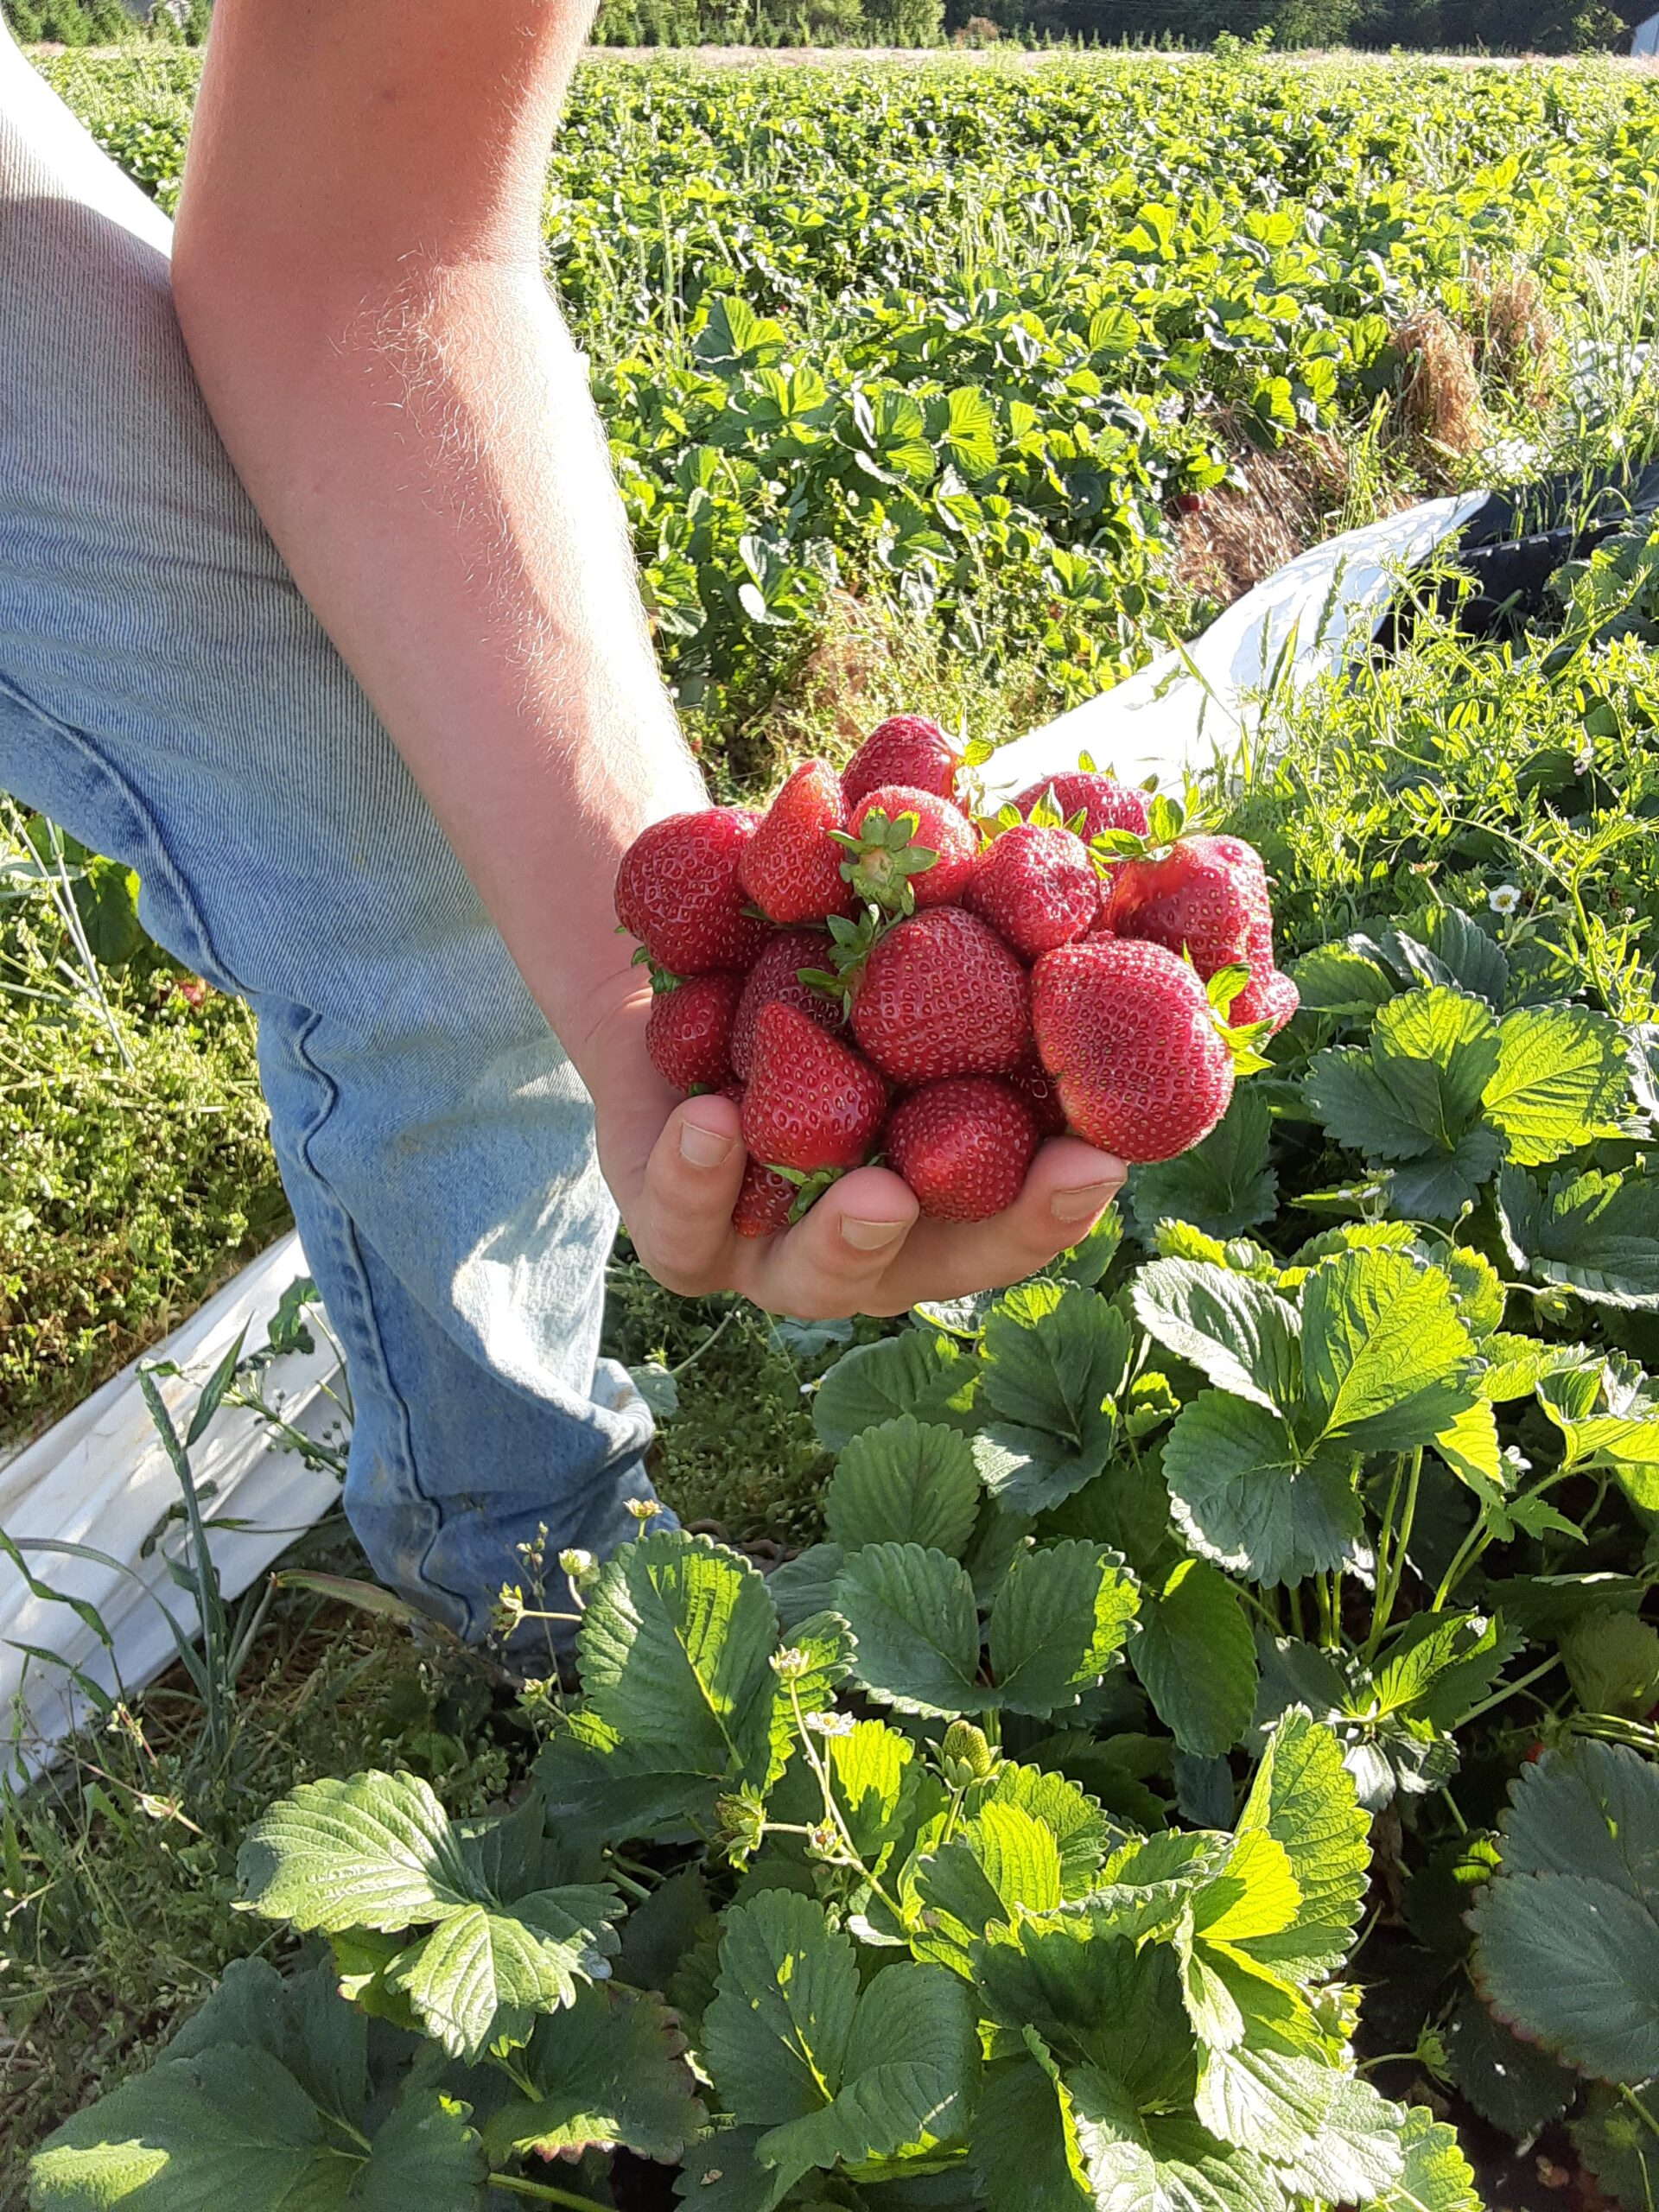 Yes, we still have plenty of STRAWBERRIES to Pick!